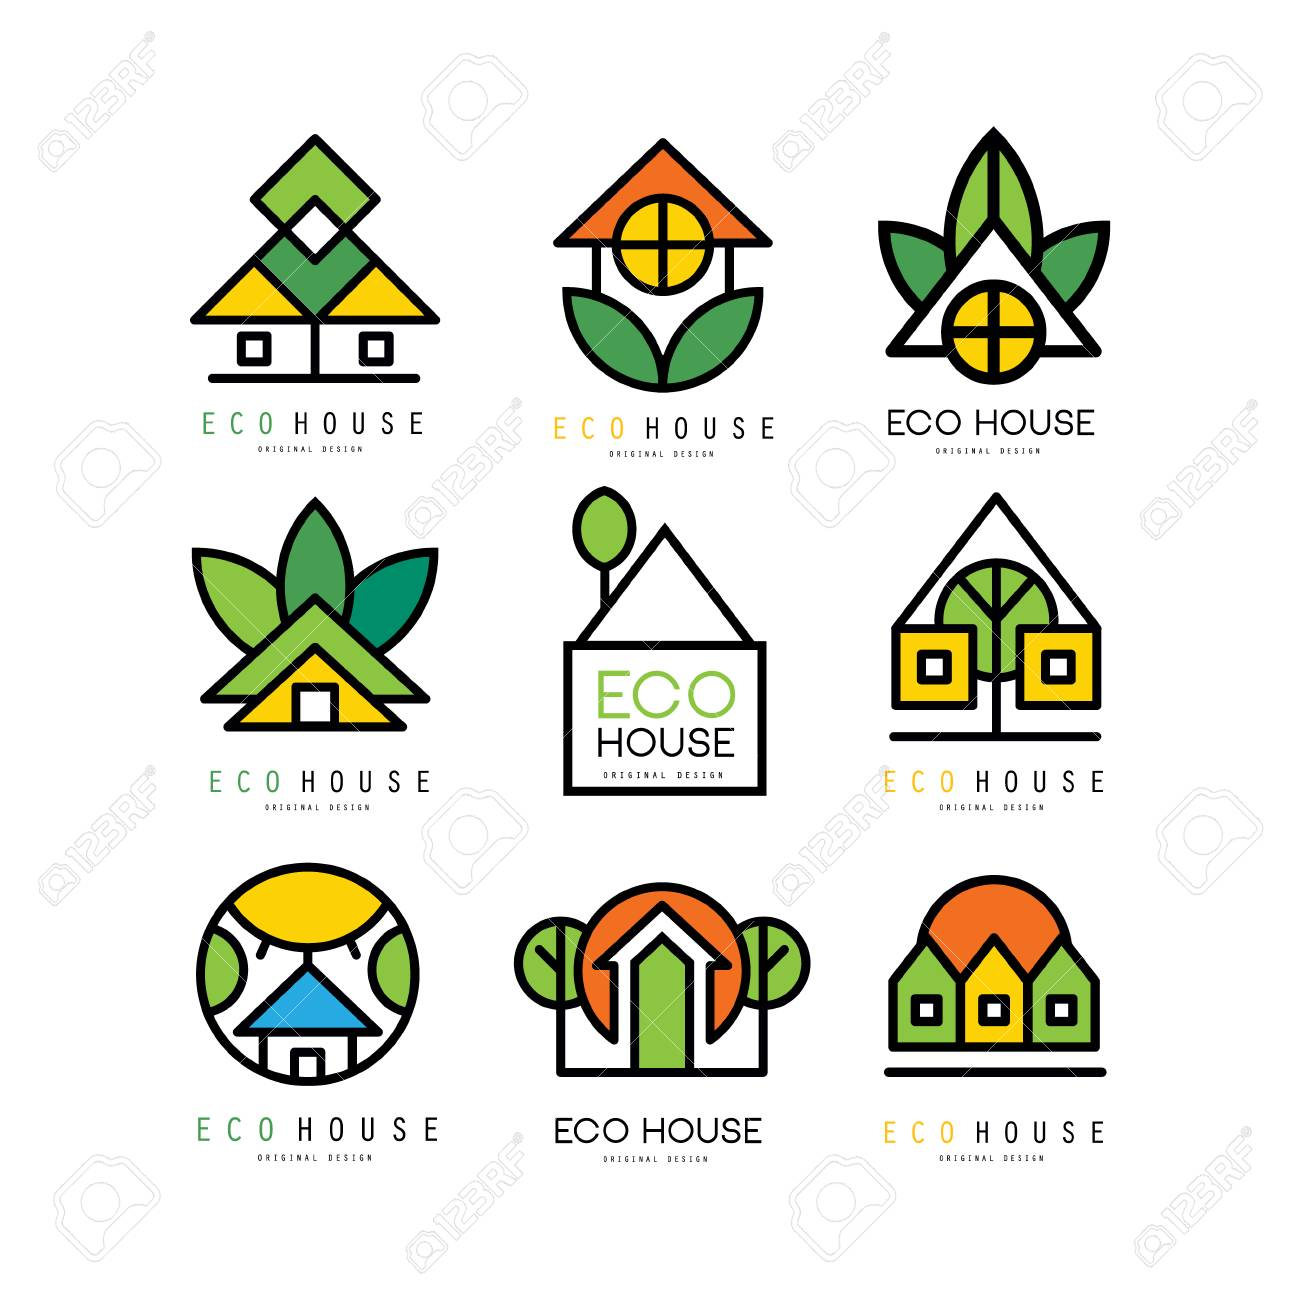 Collection of original logos with eco friendly houses. Ecological construction. Linear emblems for building company, real estate agency or architectural service. Vector illustration isolated on white - 98702125